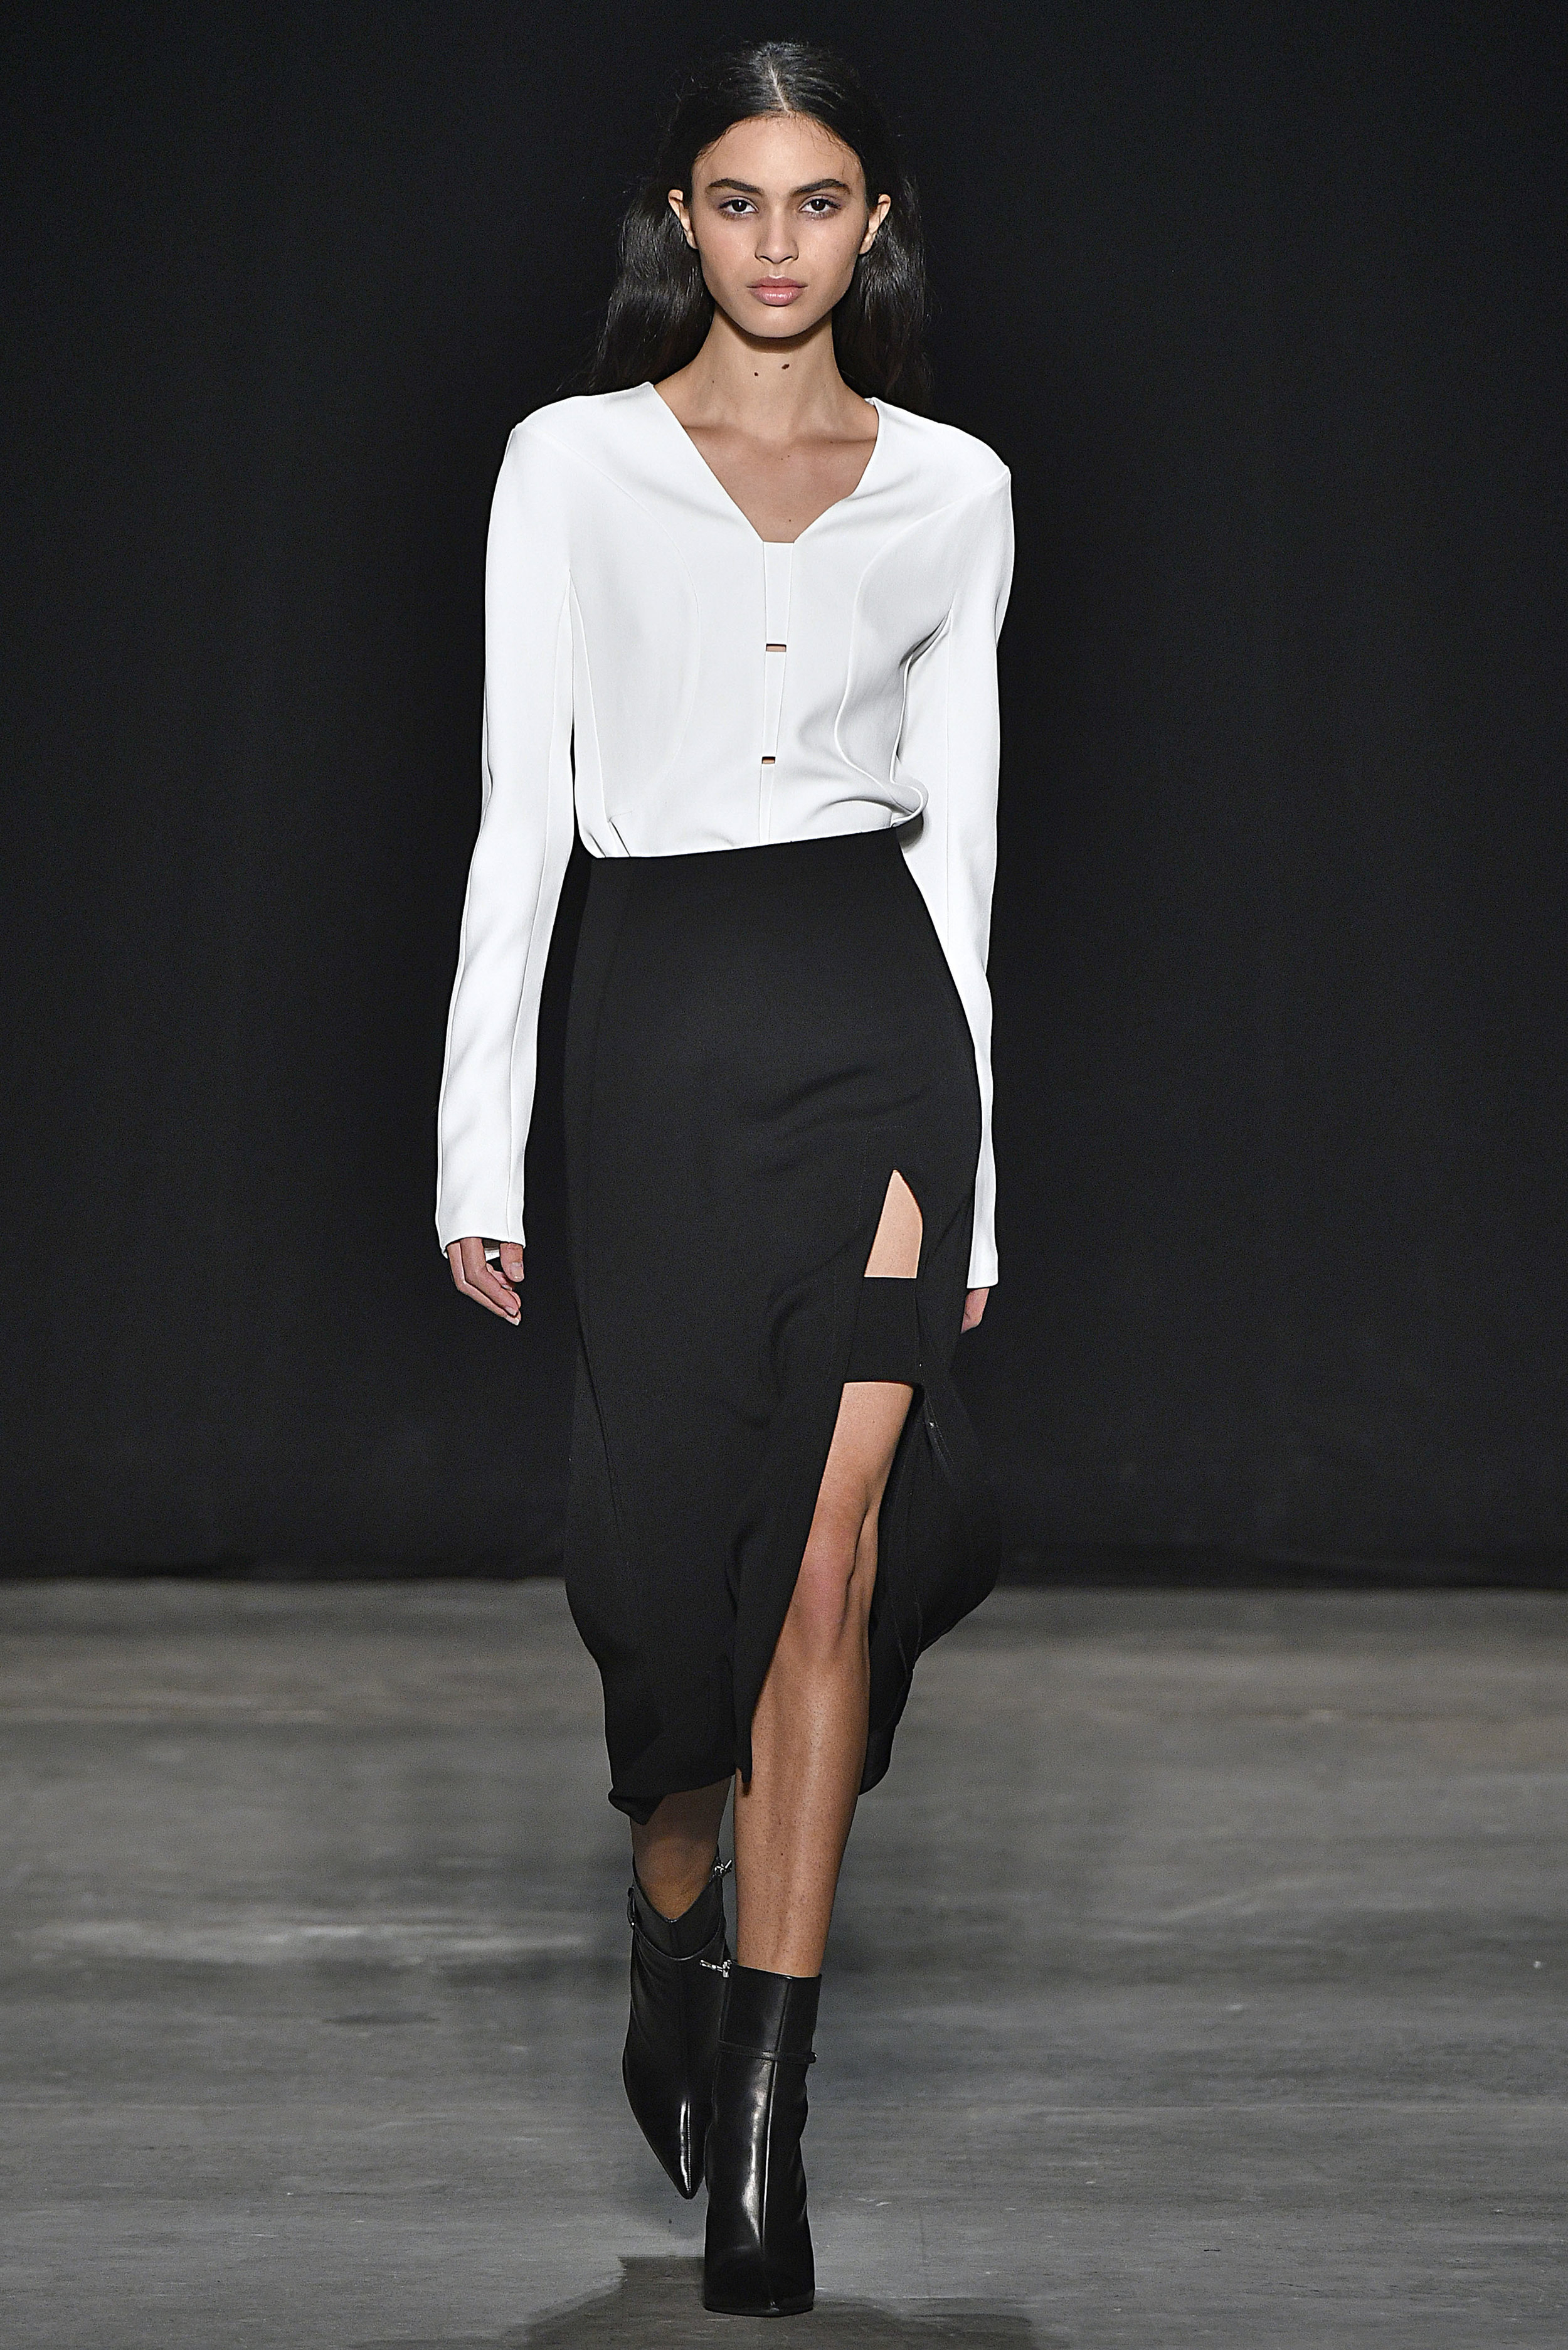 Narciso Rodriguez Fall 2017 collection. White twill crepe top with black wool barathea skirt.